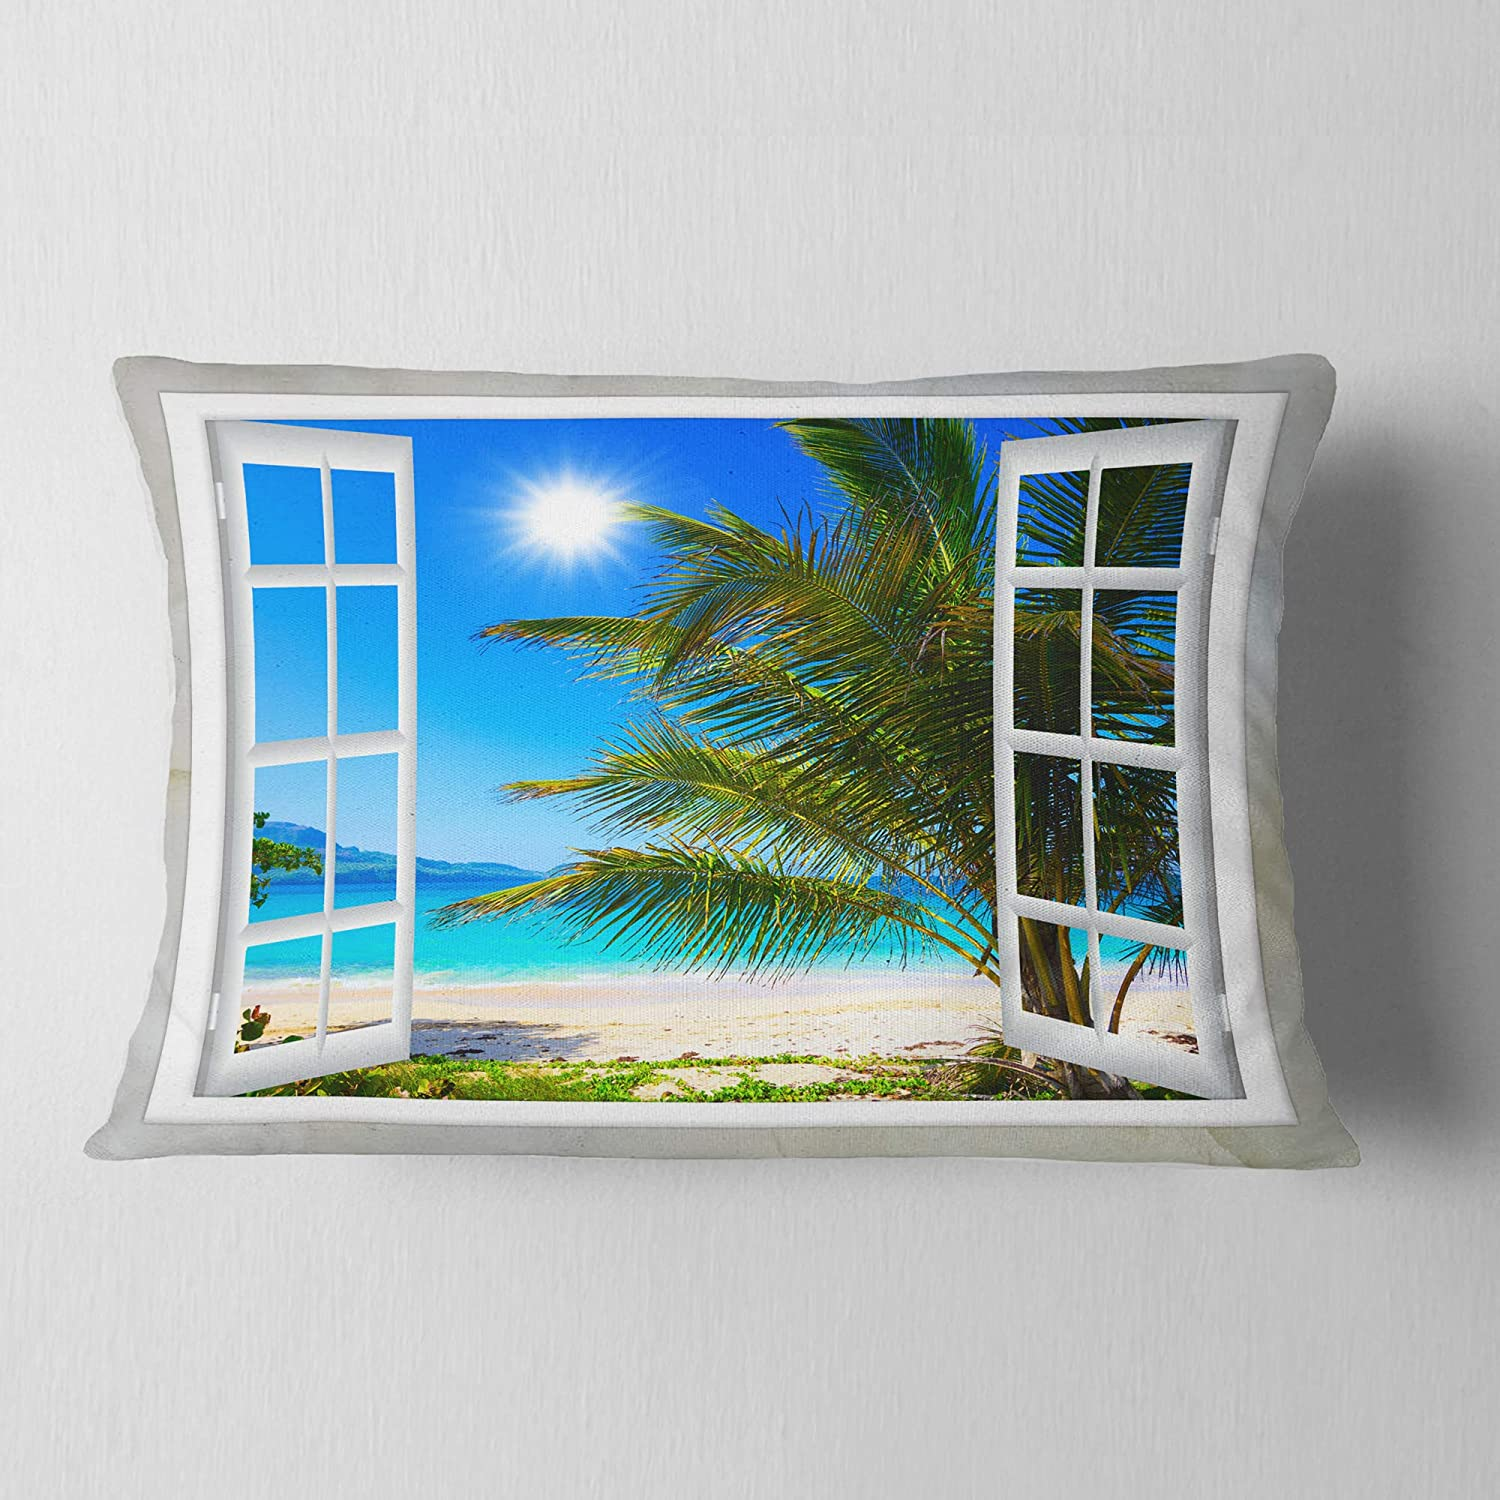 Designart CU11433-12-20 Window Open to Beach with Palm' Seashore Lumbar Cushion Cover for Living Room, Sofa Throw Pillow 12 in. x 20 in. in, Insert Printed On Both Side